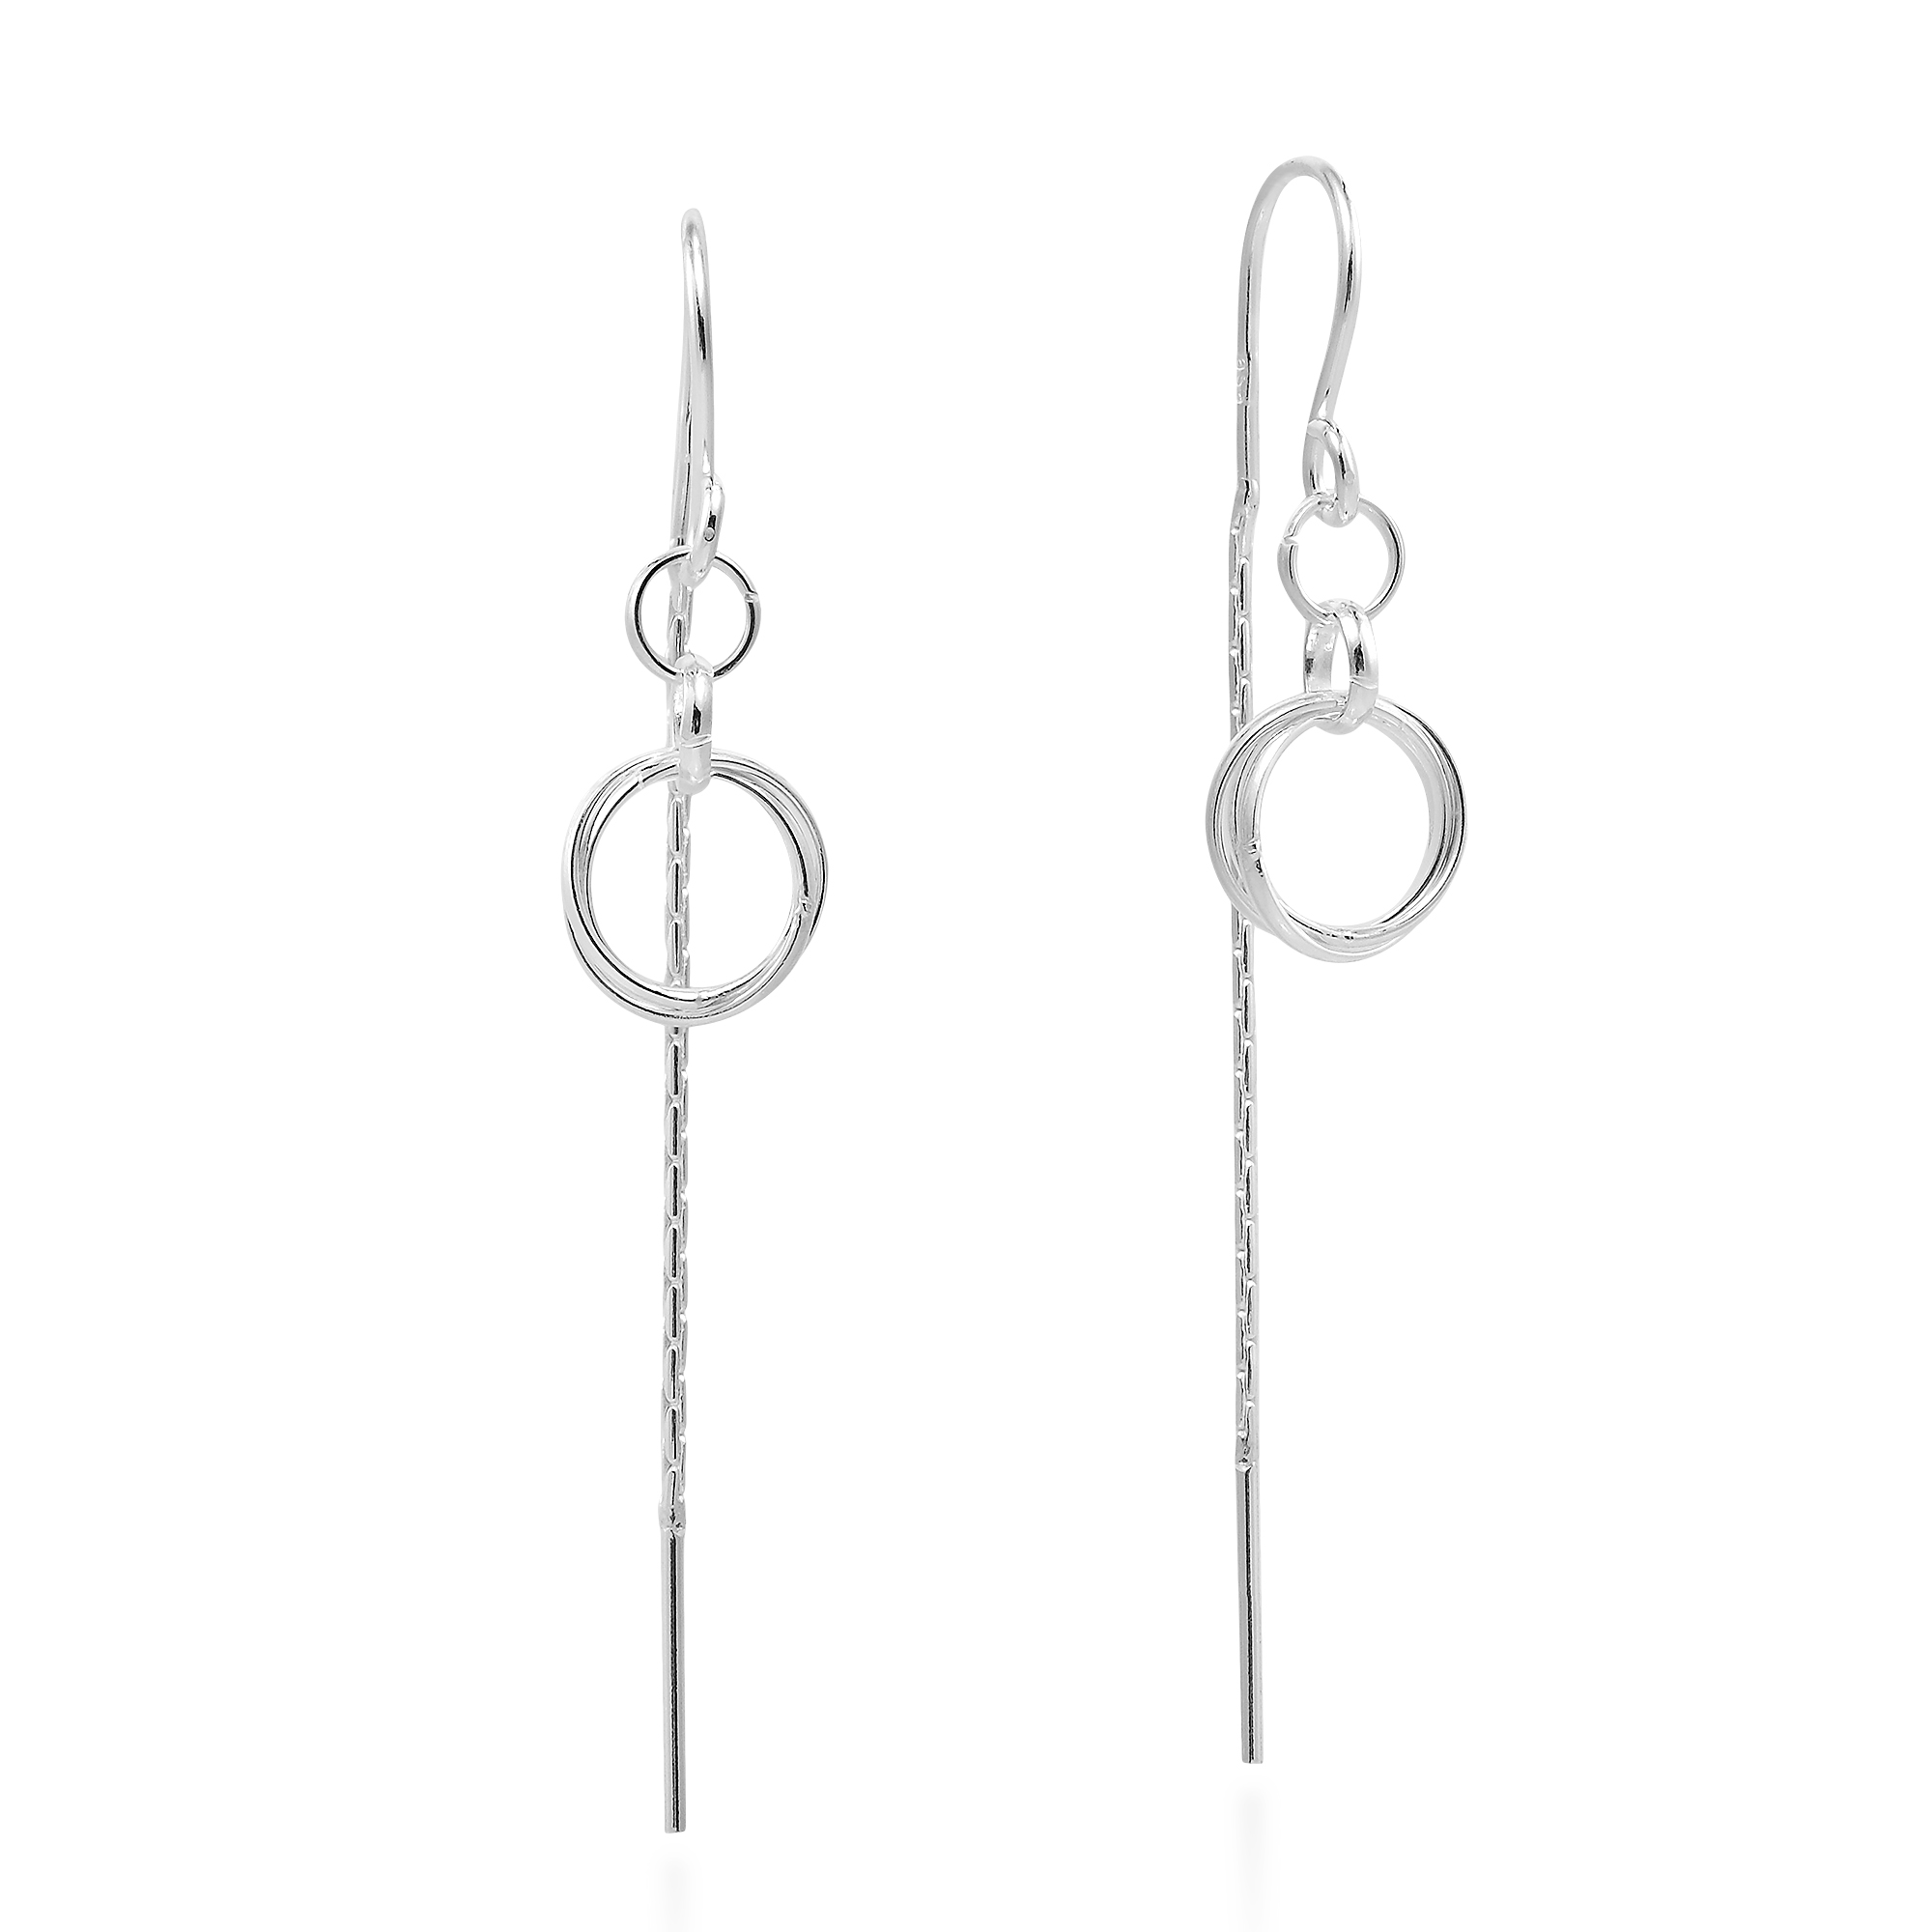 Thai Katsaya Handcrafted These Stunning Sterling Silver Earrings The Thread Style Earring Design Features Double Circles Linked Together